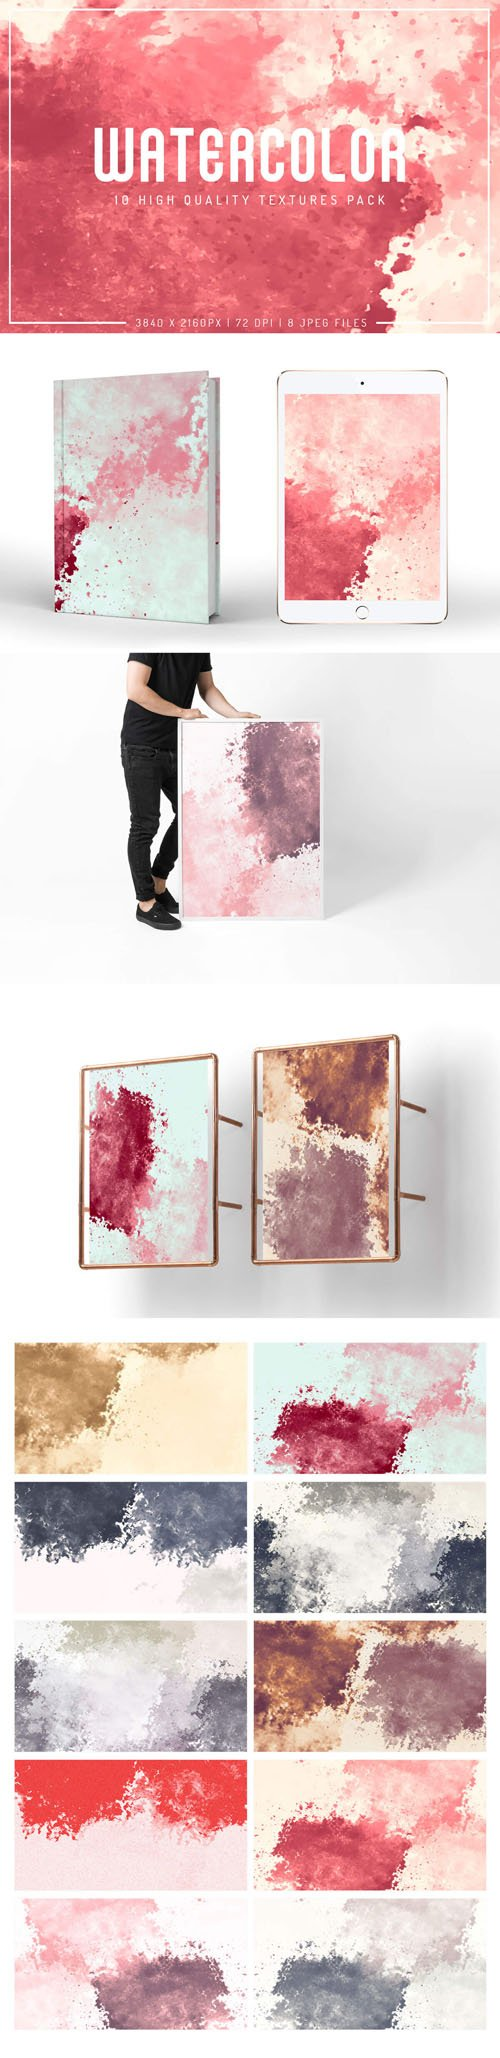 Watercolor - 10 High Quality Textures Pack